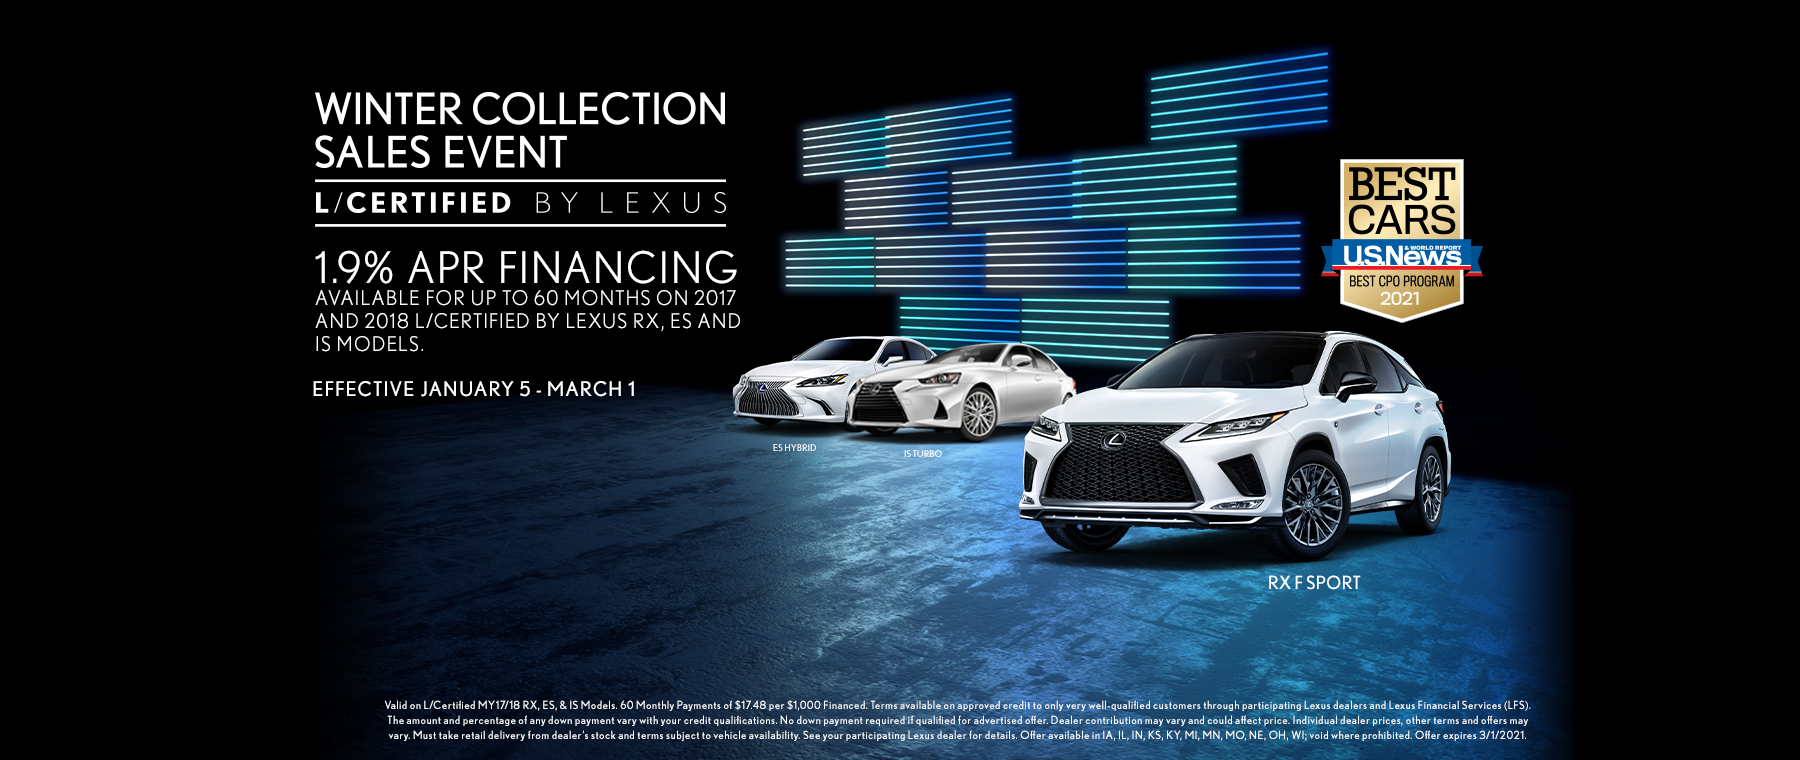 L/Certified Winter Collection Sales Event